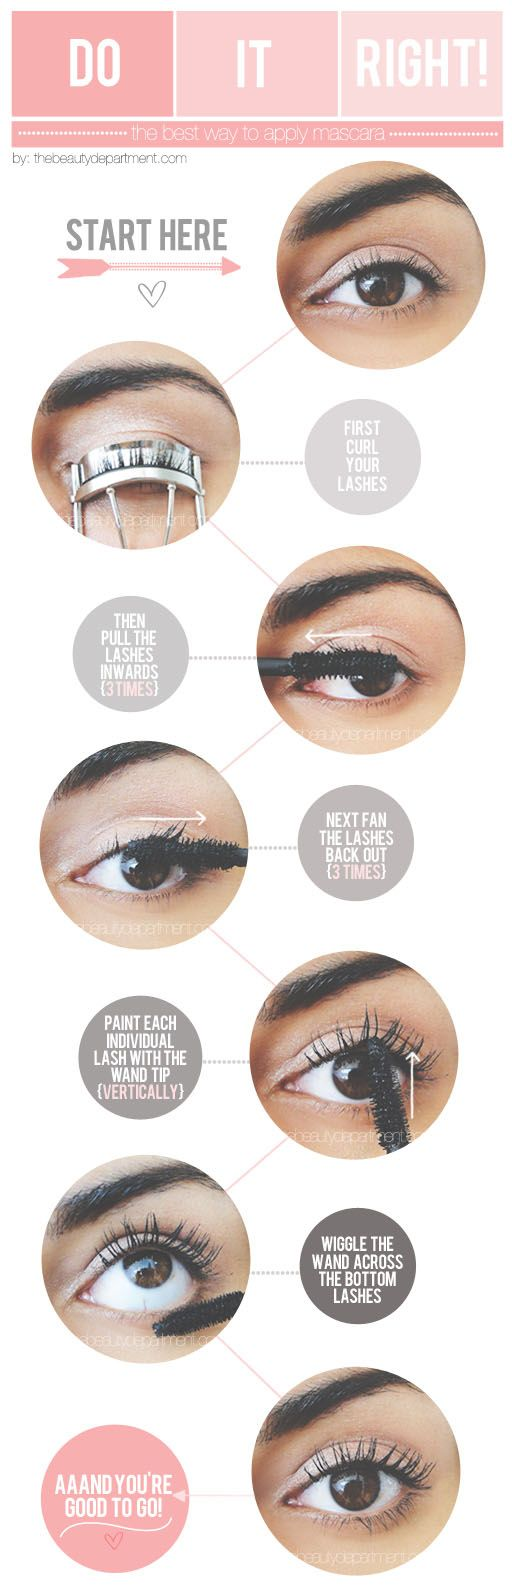 Mascara must-dos - great tip on getting mega lashes